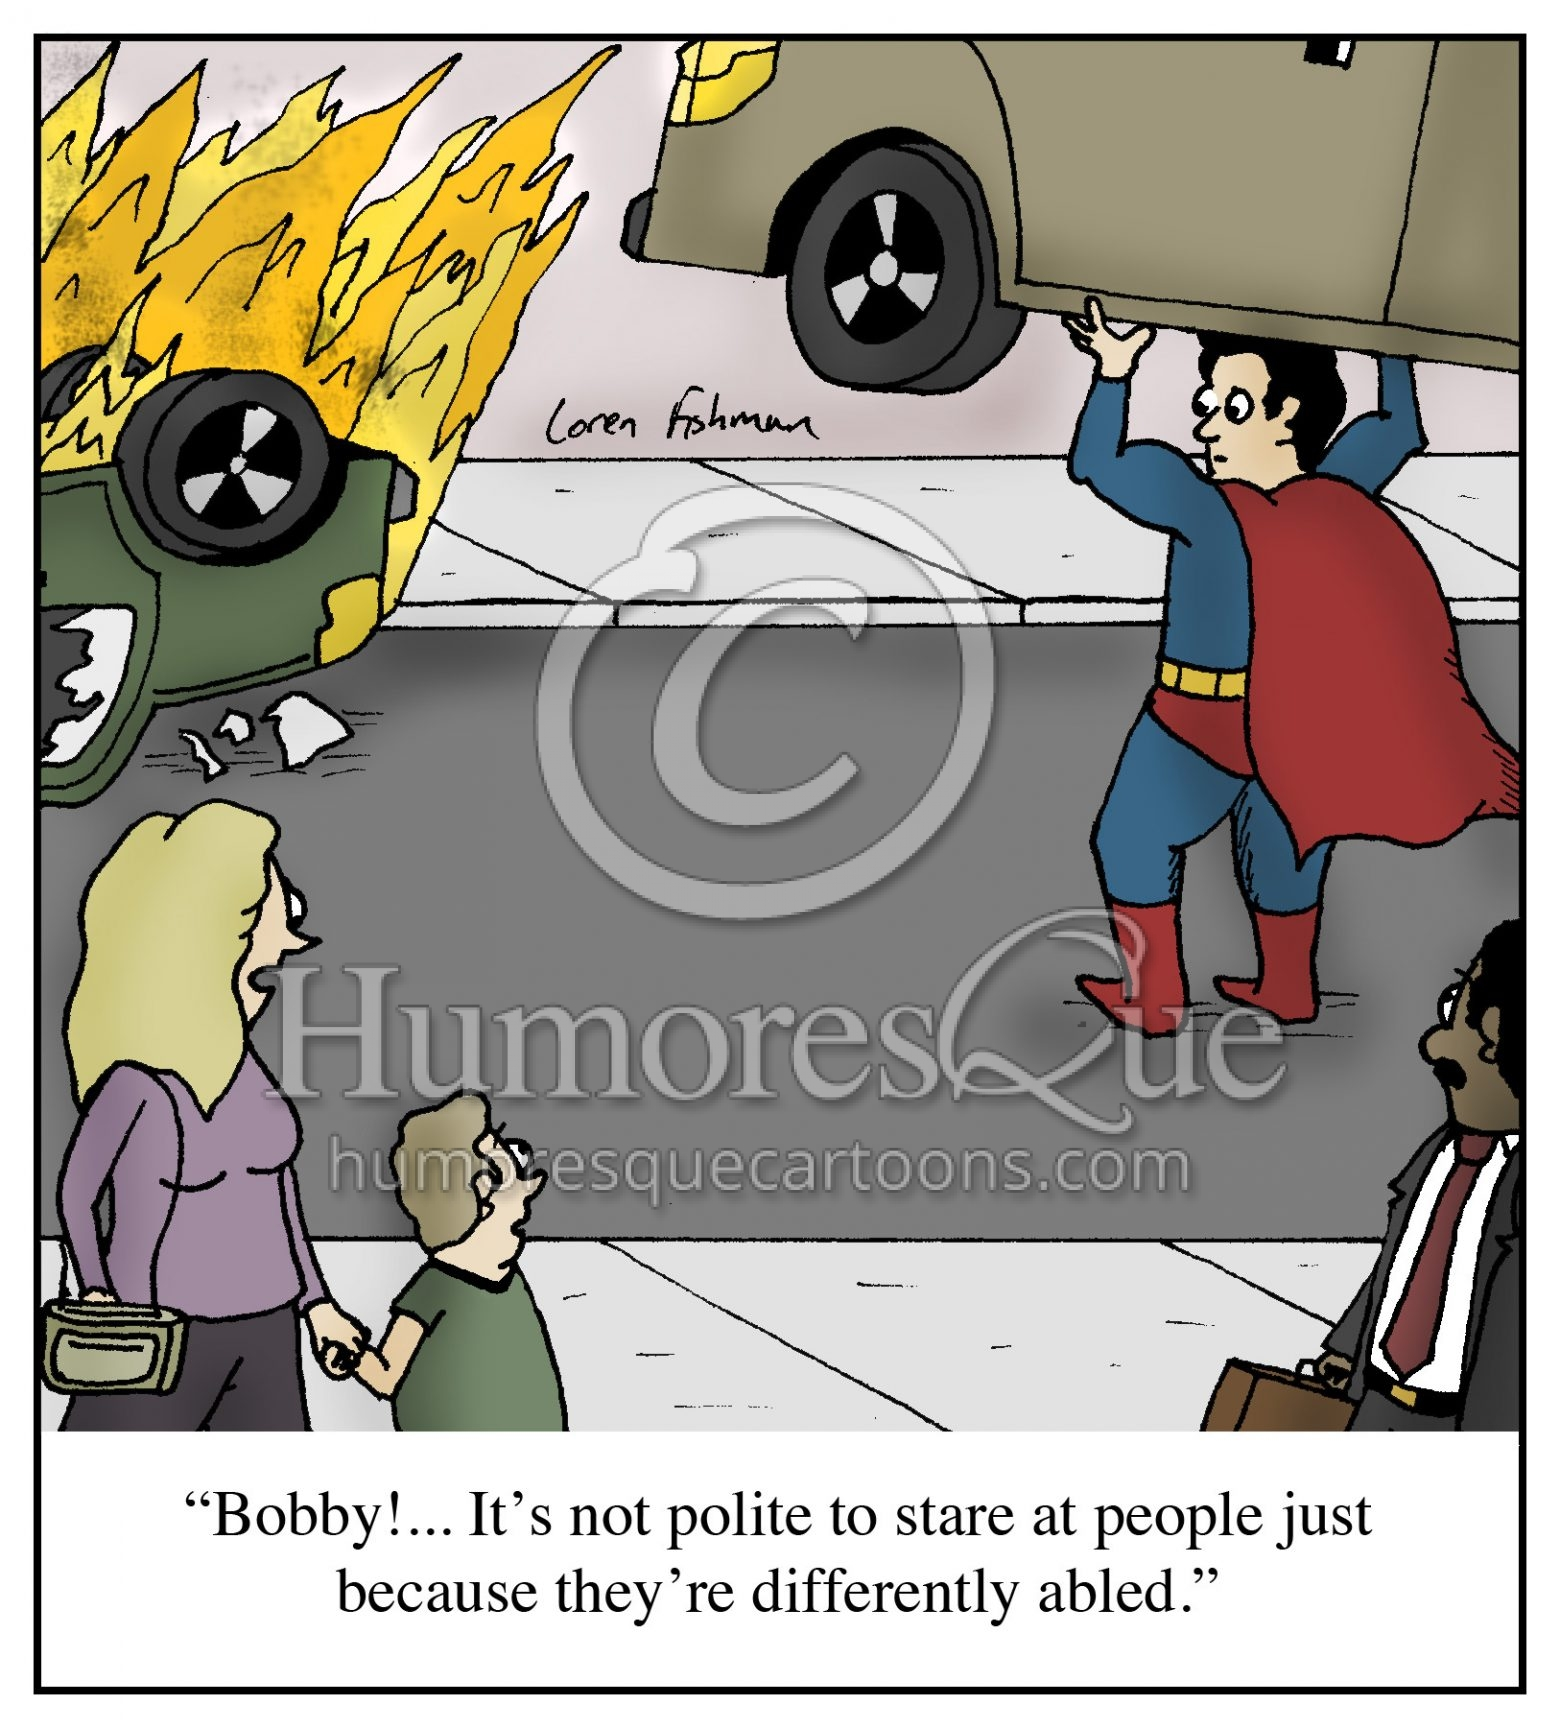 calling superman differently abled political correctness cartoon